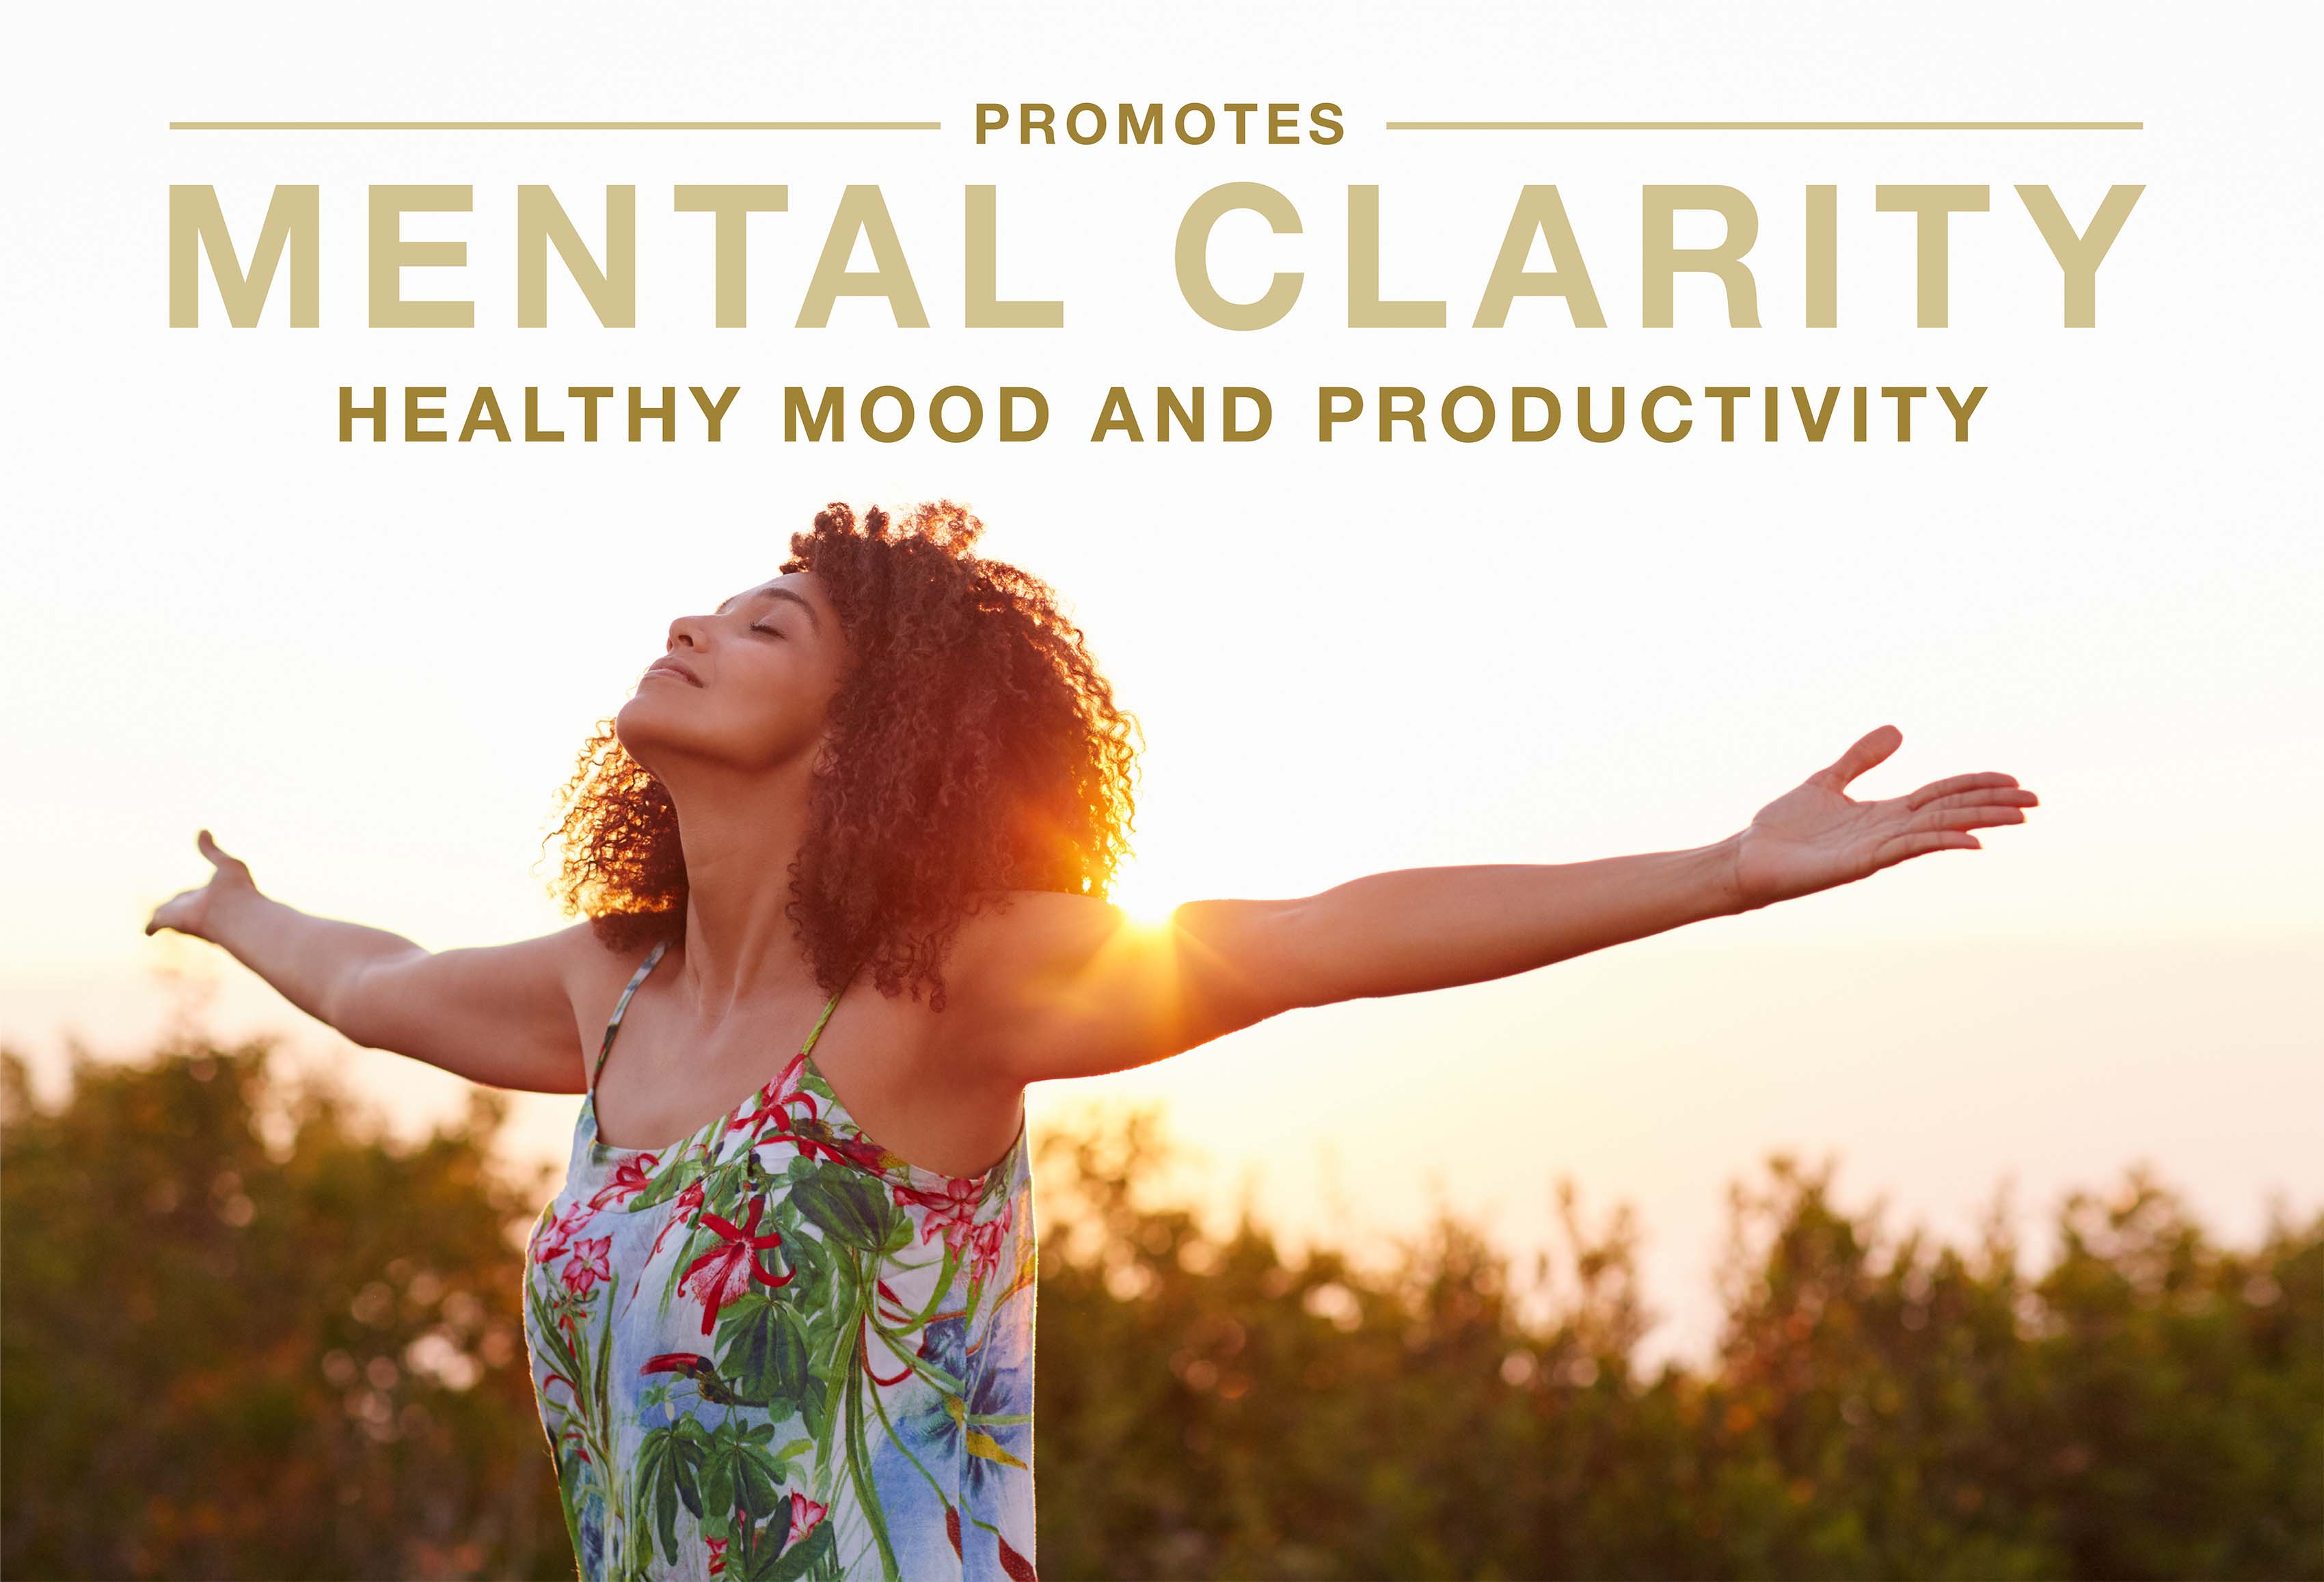 Promotes mental clarity, healthy mood, and productivity.